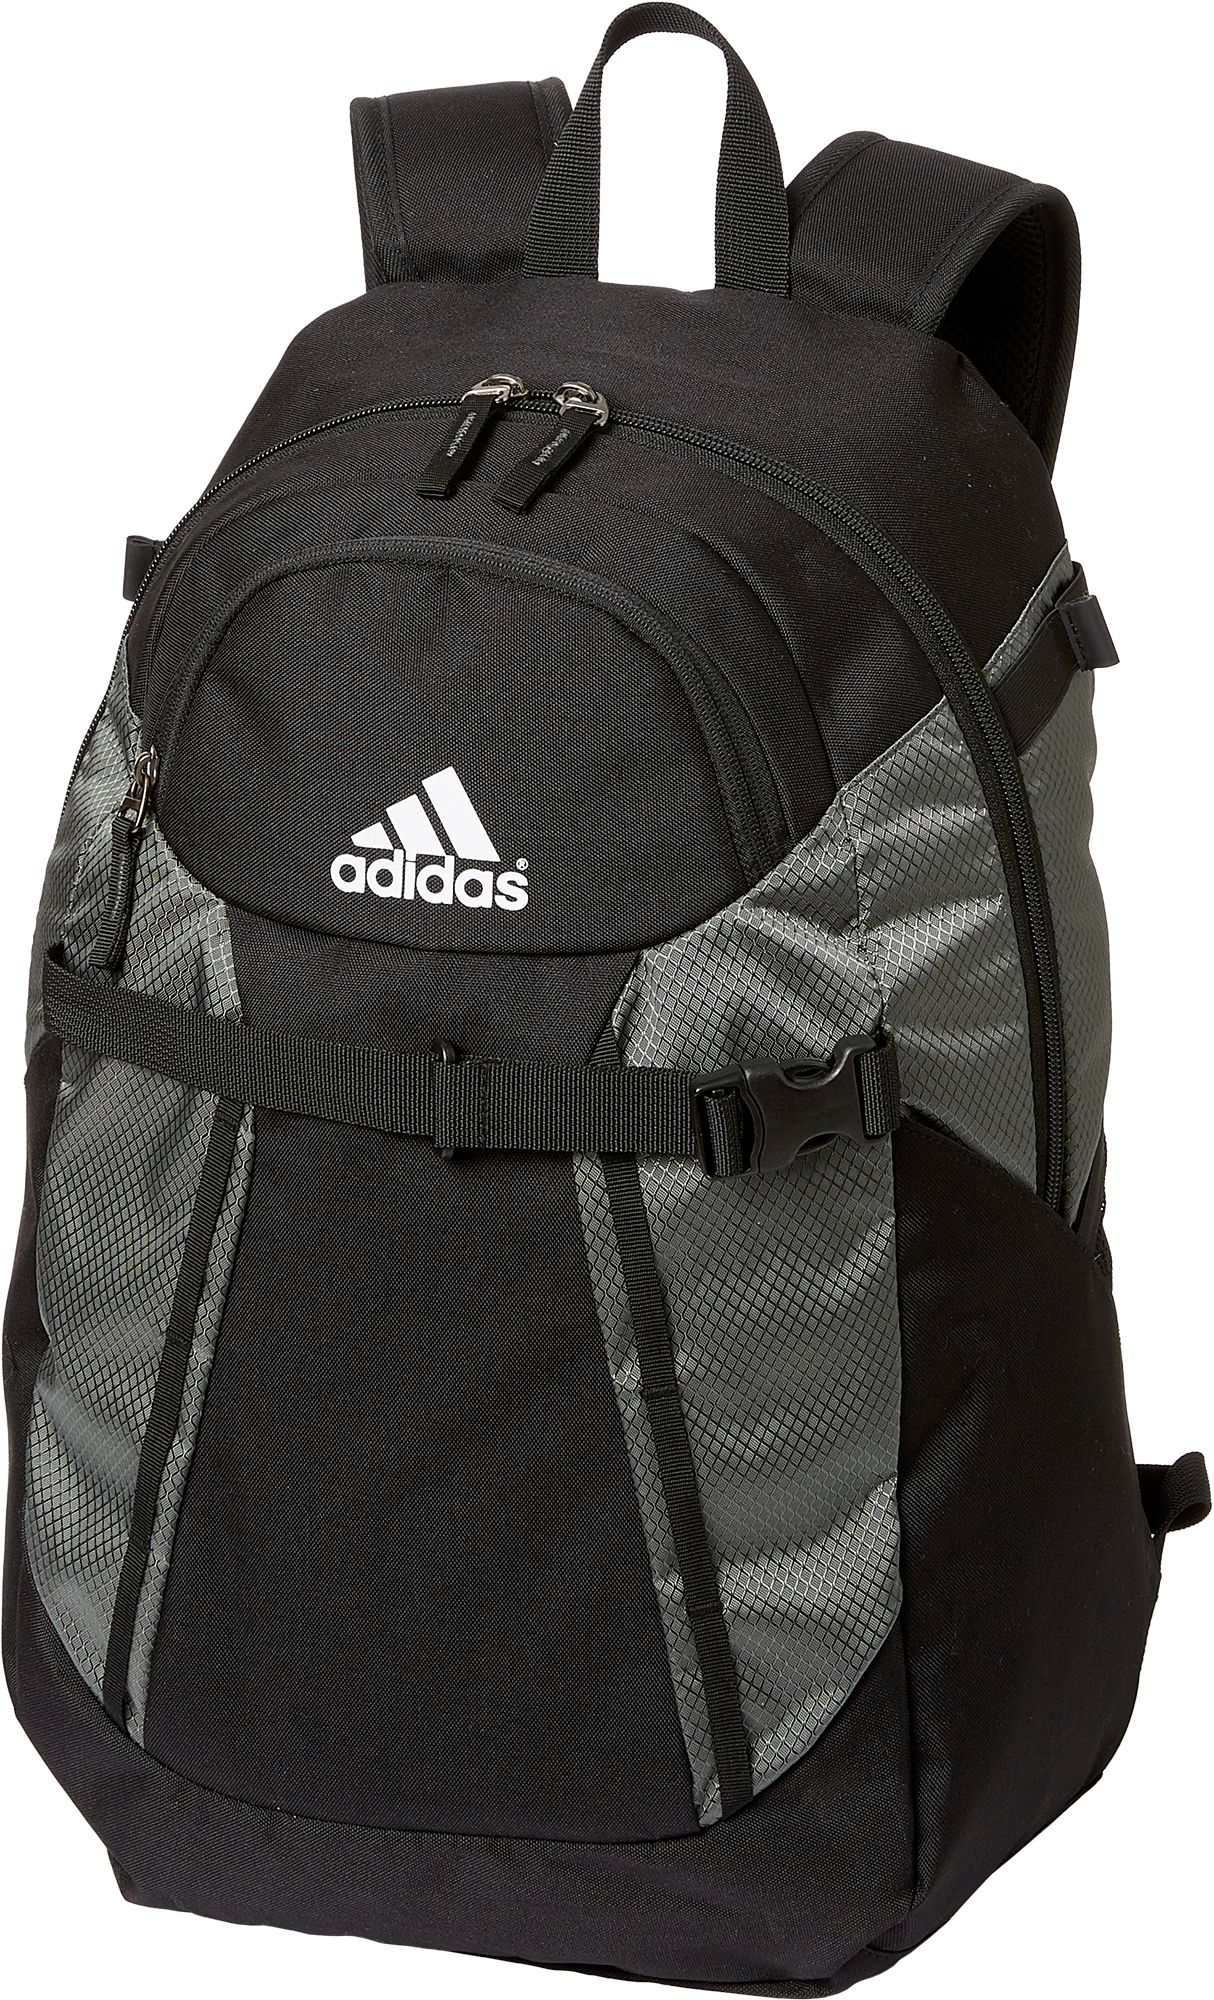 Sports Backpacks & Gym Bags | DICK'S Sporting Goods